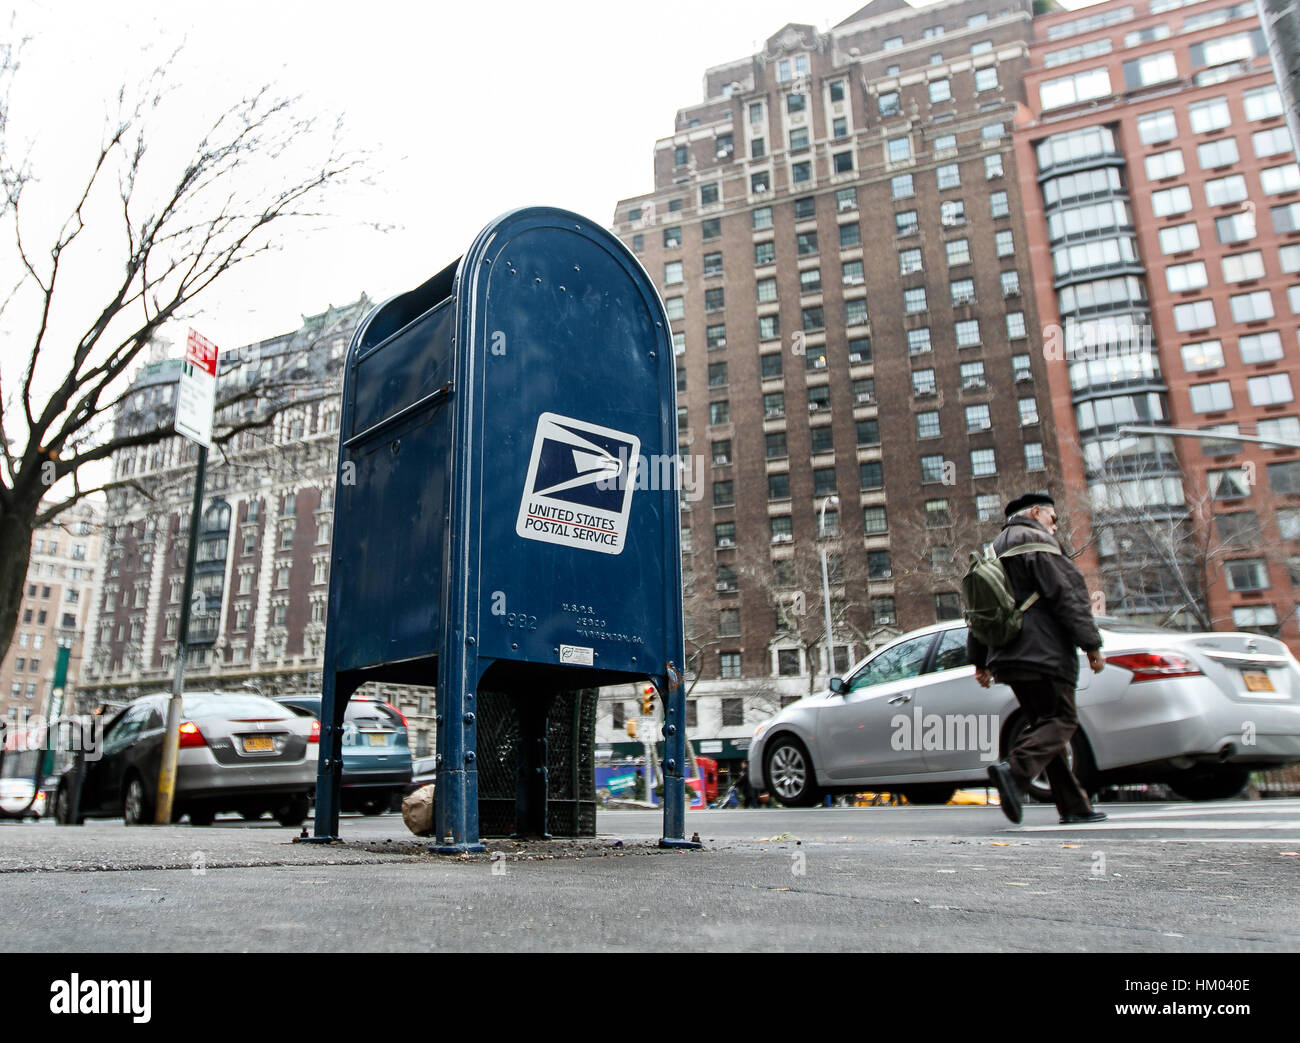 a-united-states-postal-service-box-stand